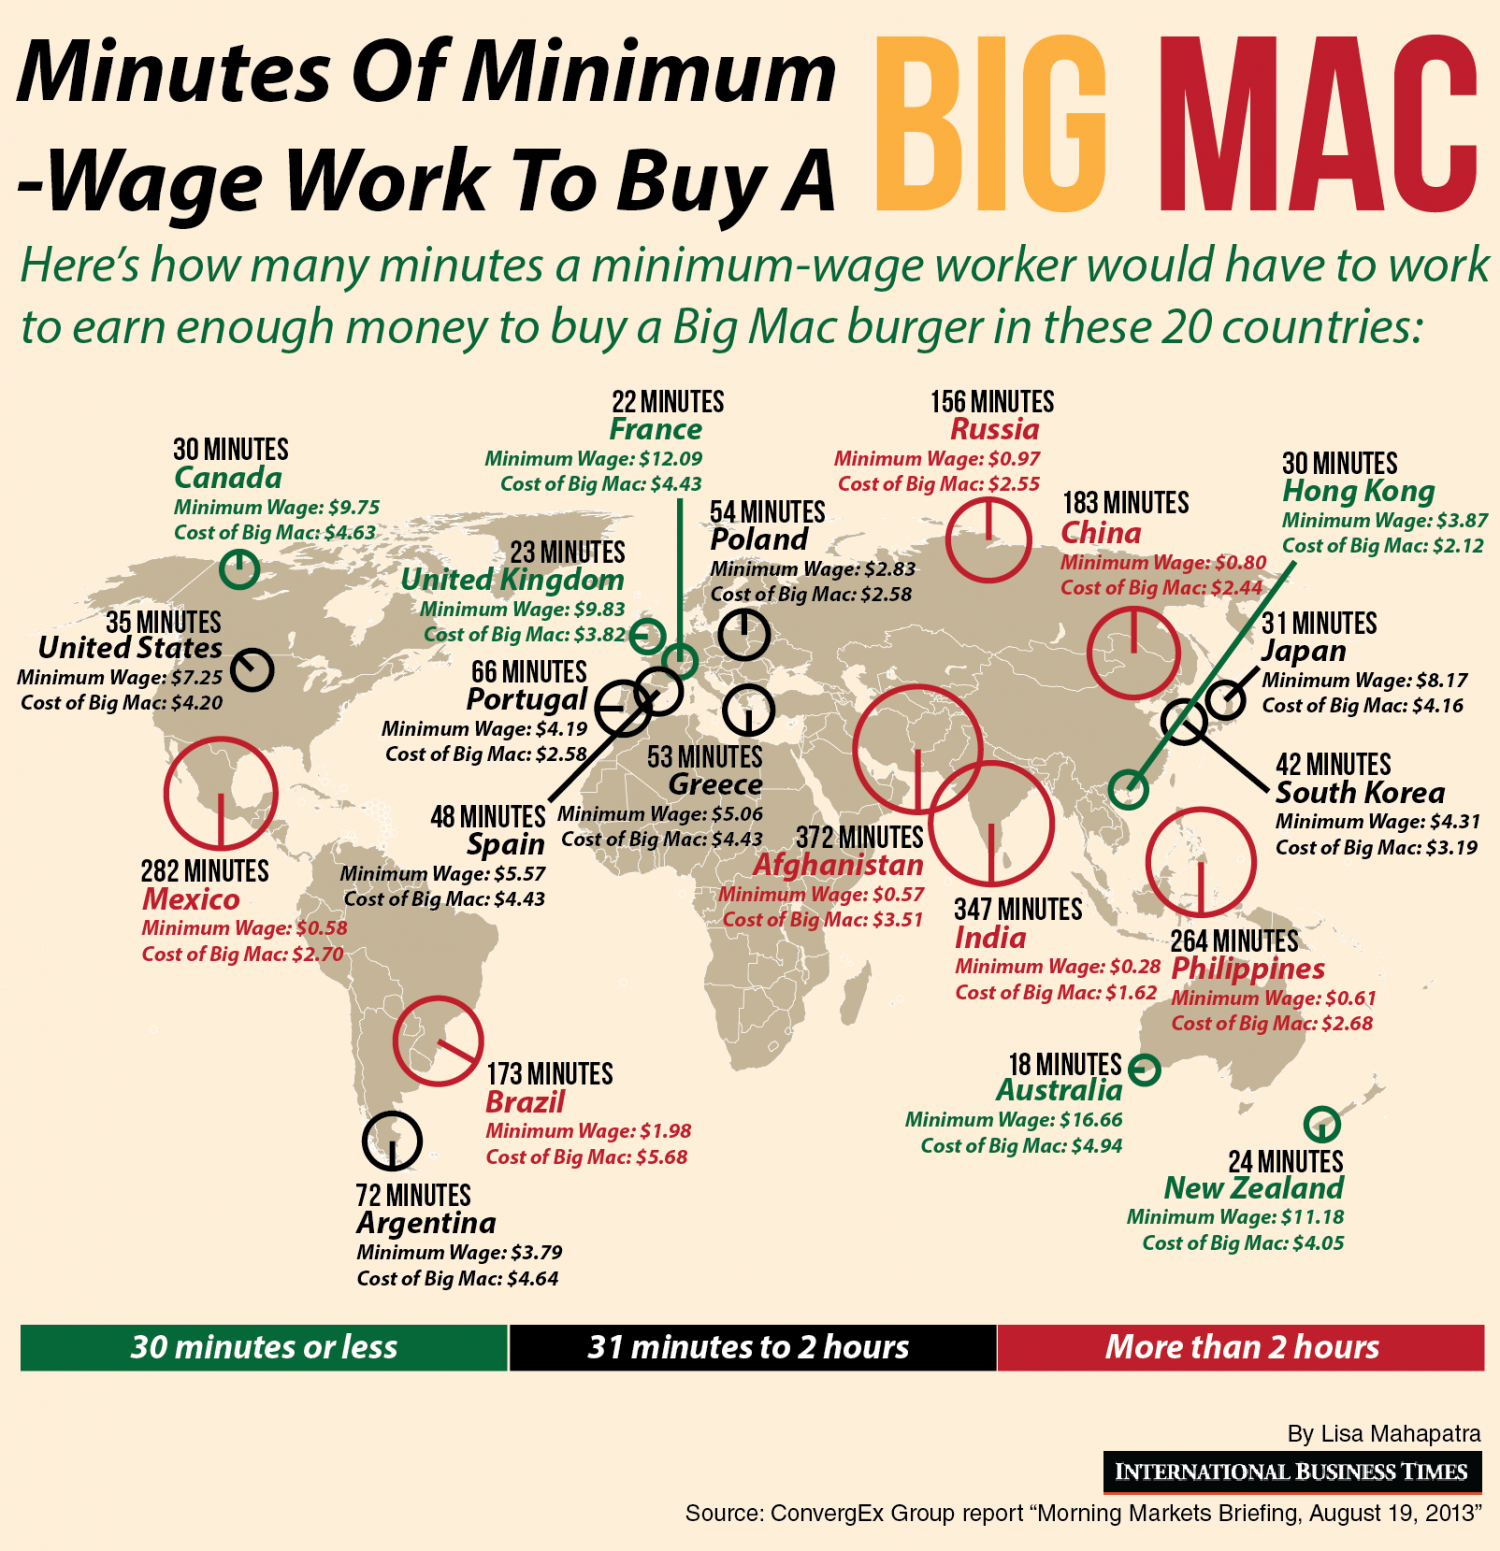 Minimum Wage Minutes To Buy A Big Mac Infographic